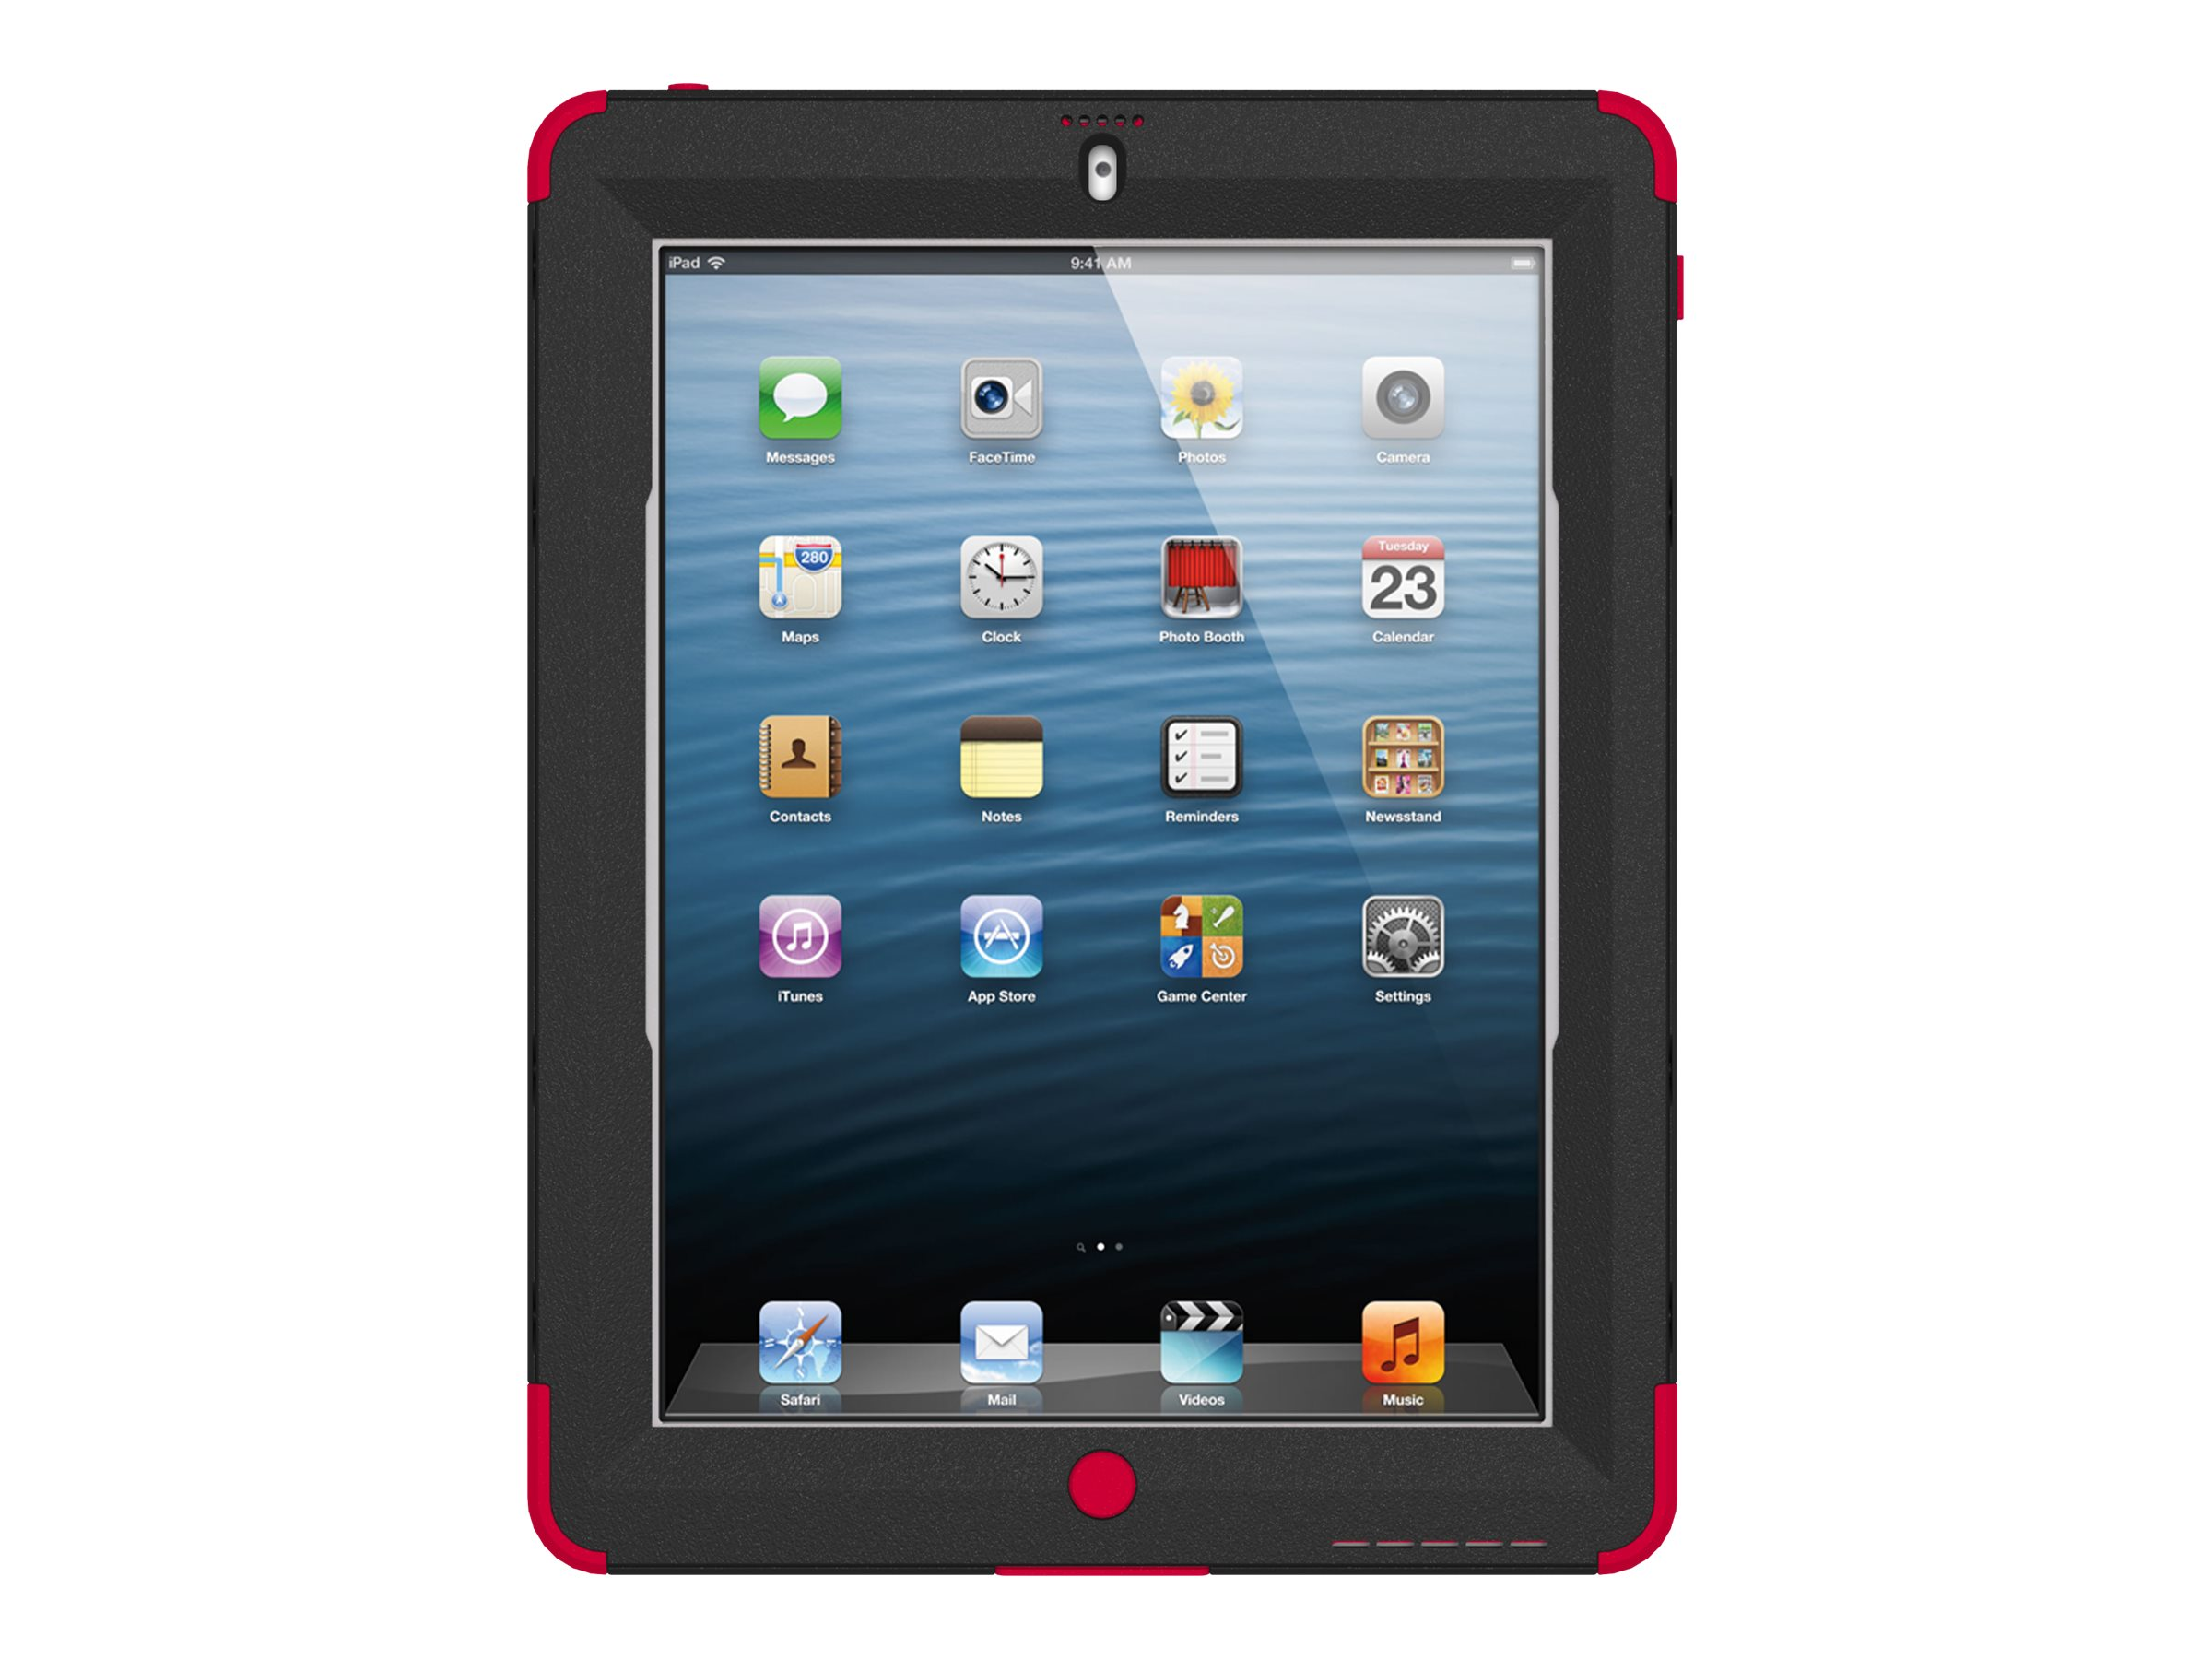 Trident Case AMS-NEW-IPADUS-RED Image 1